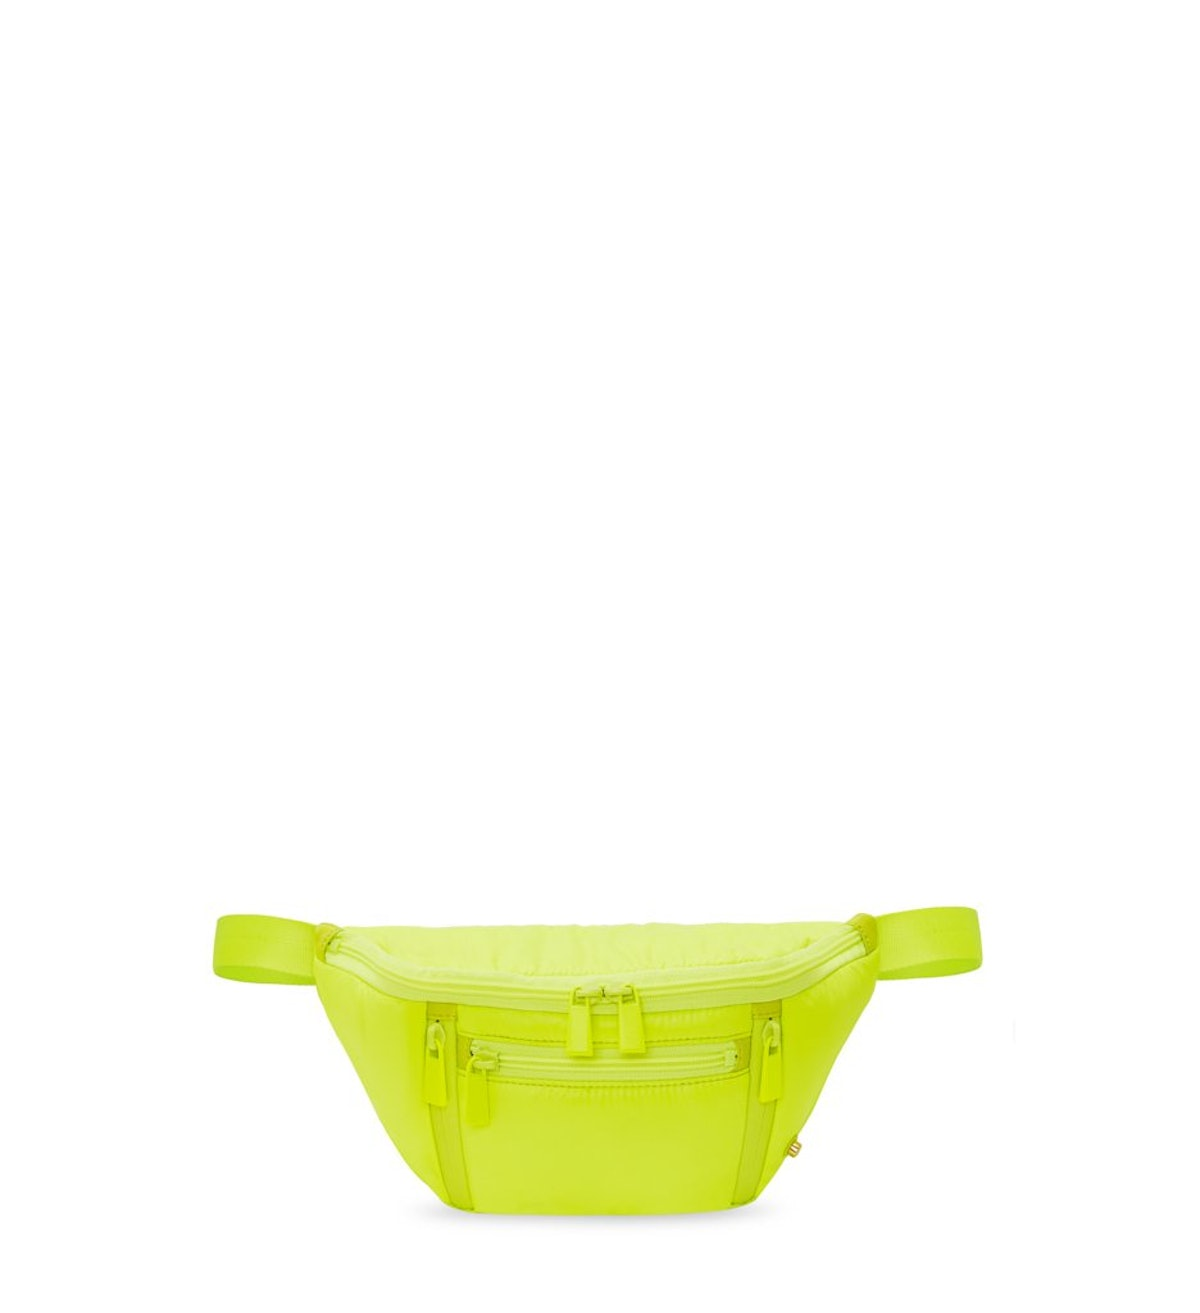 Small Sling in Neon Yellow